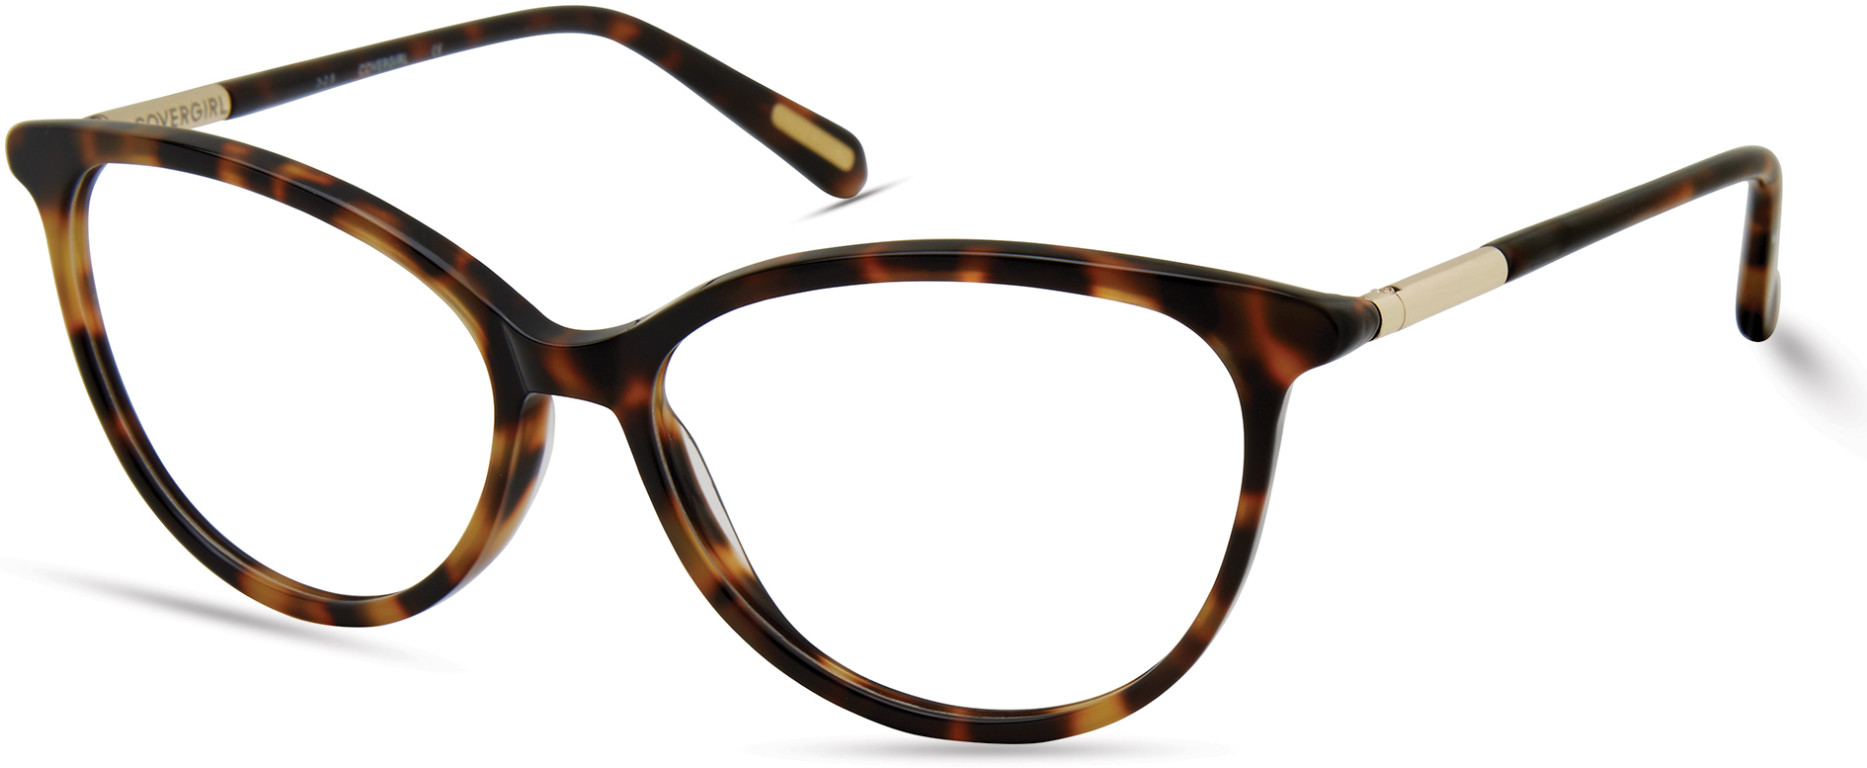 Cover Girl Eyeglasses<br>CG 4000